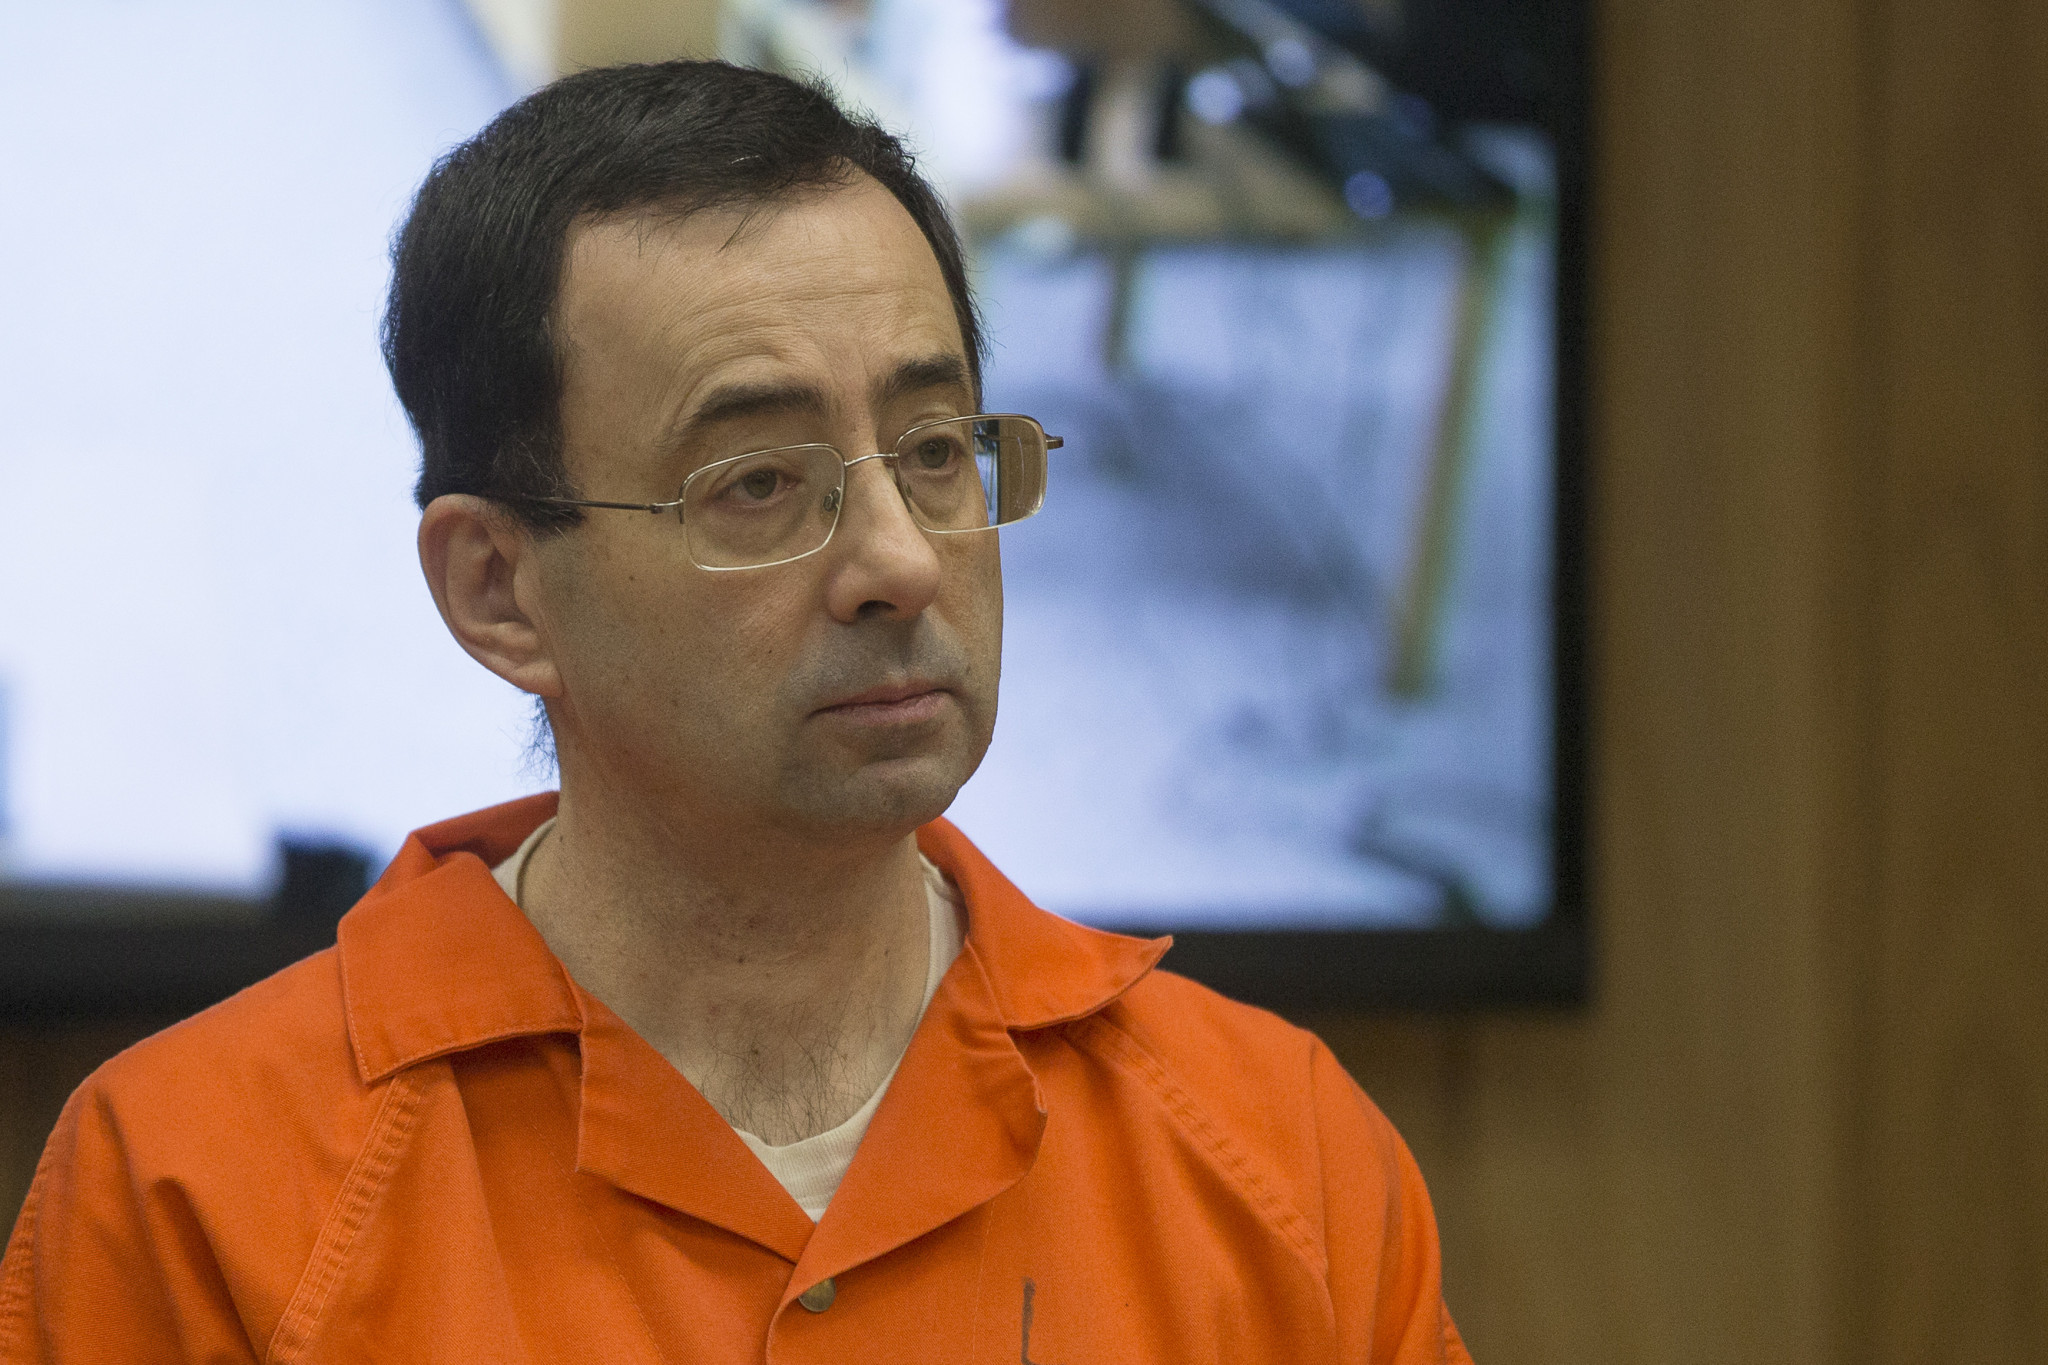 Richard Blumenthal claims Larry Nassar, pictured, was not a lone wolf ©Getty Images